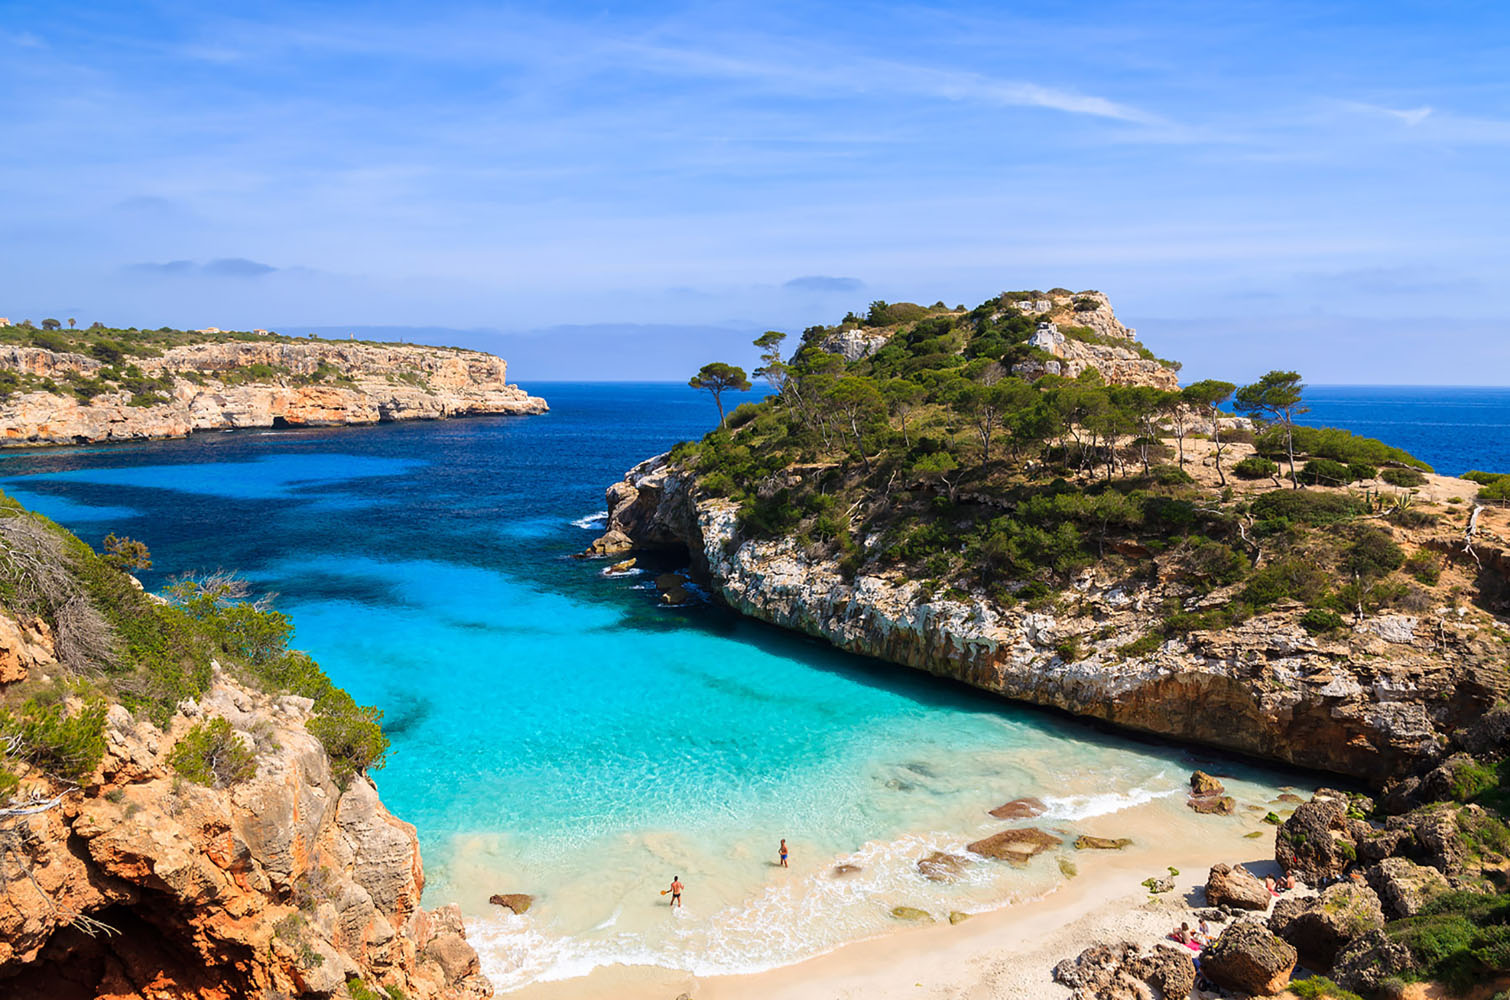 A beach on the island of Mallorca in Spain.